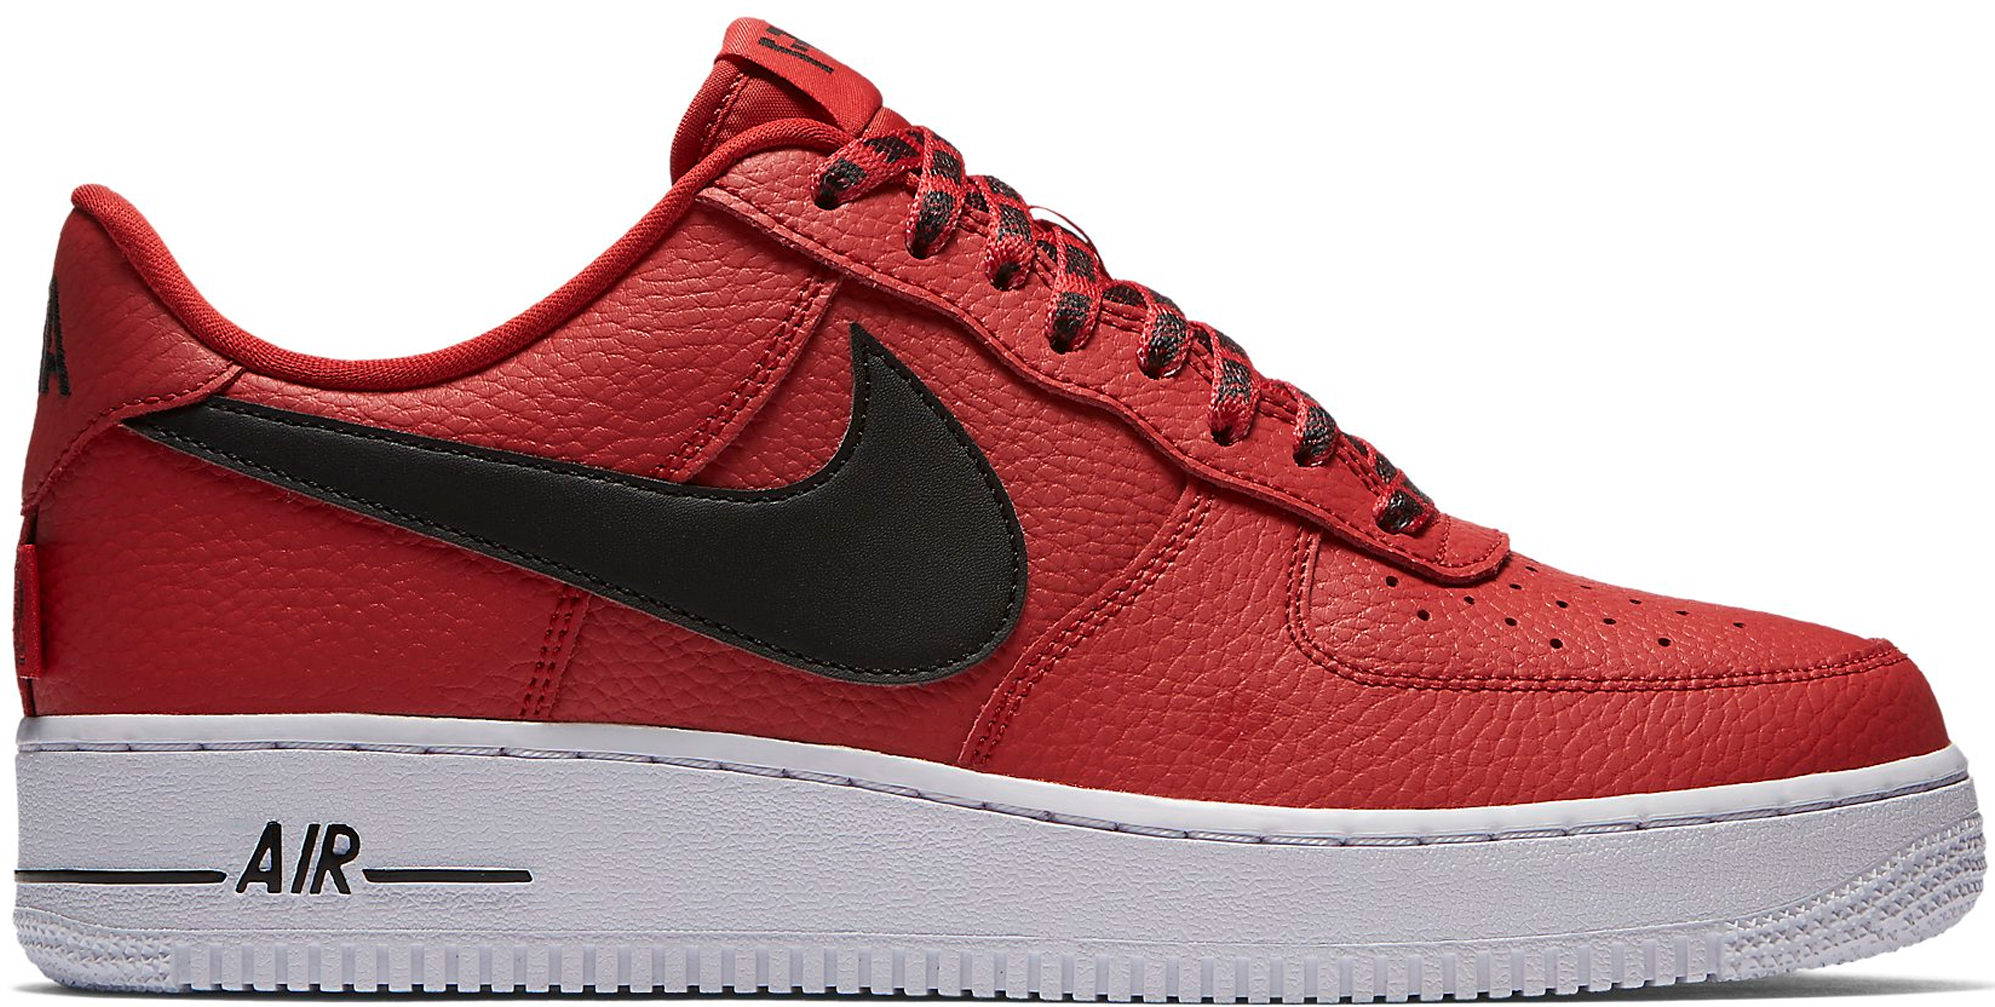 Air Force 1 Low NBA University Red